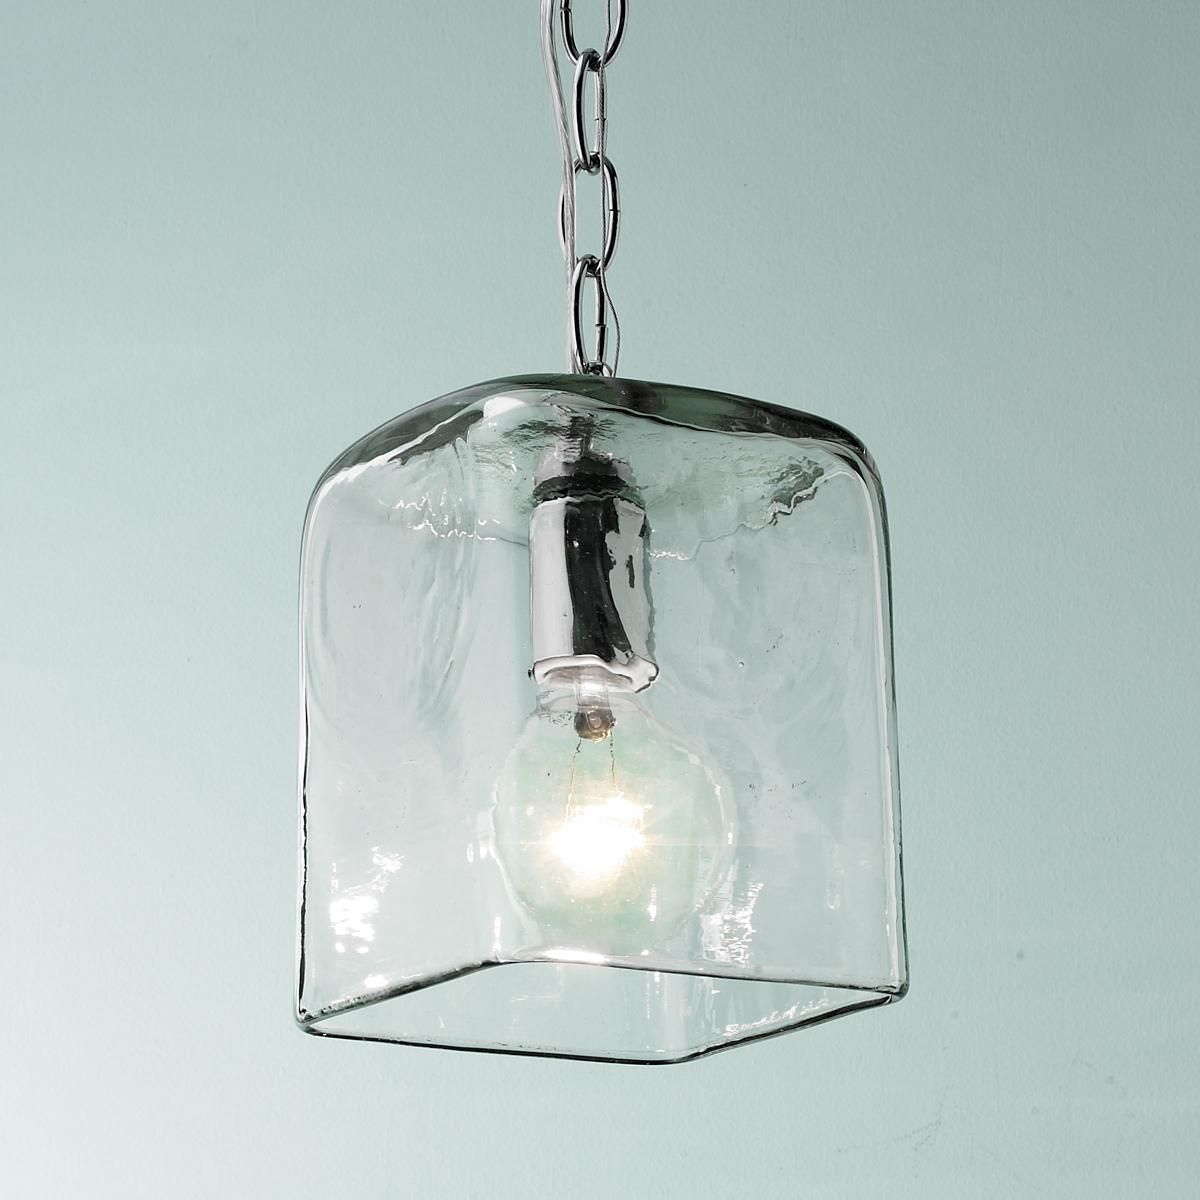 Kitchen Pendant Lighting Glass Shades Small Square Glass Pendant Light With Chain Glass